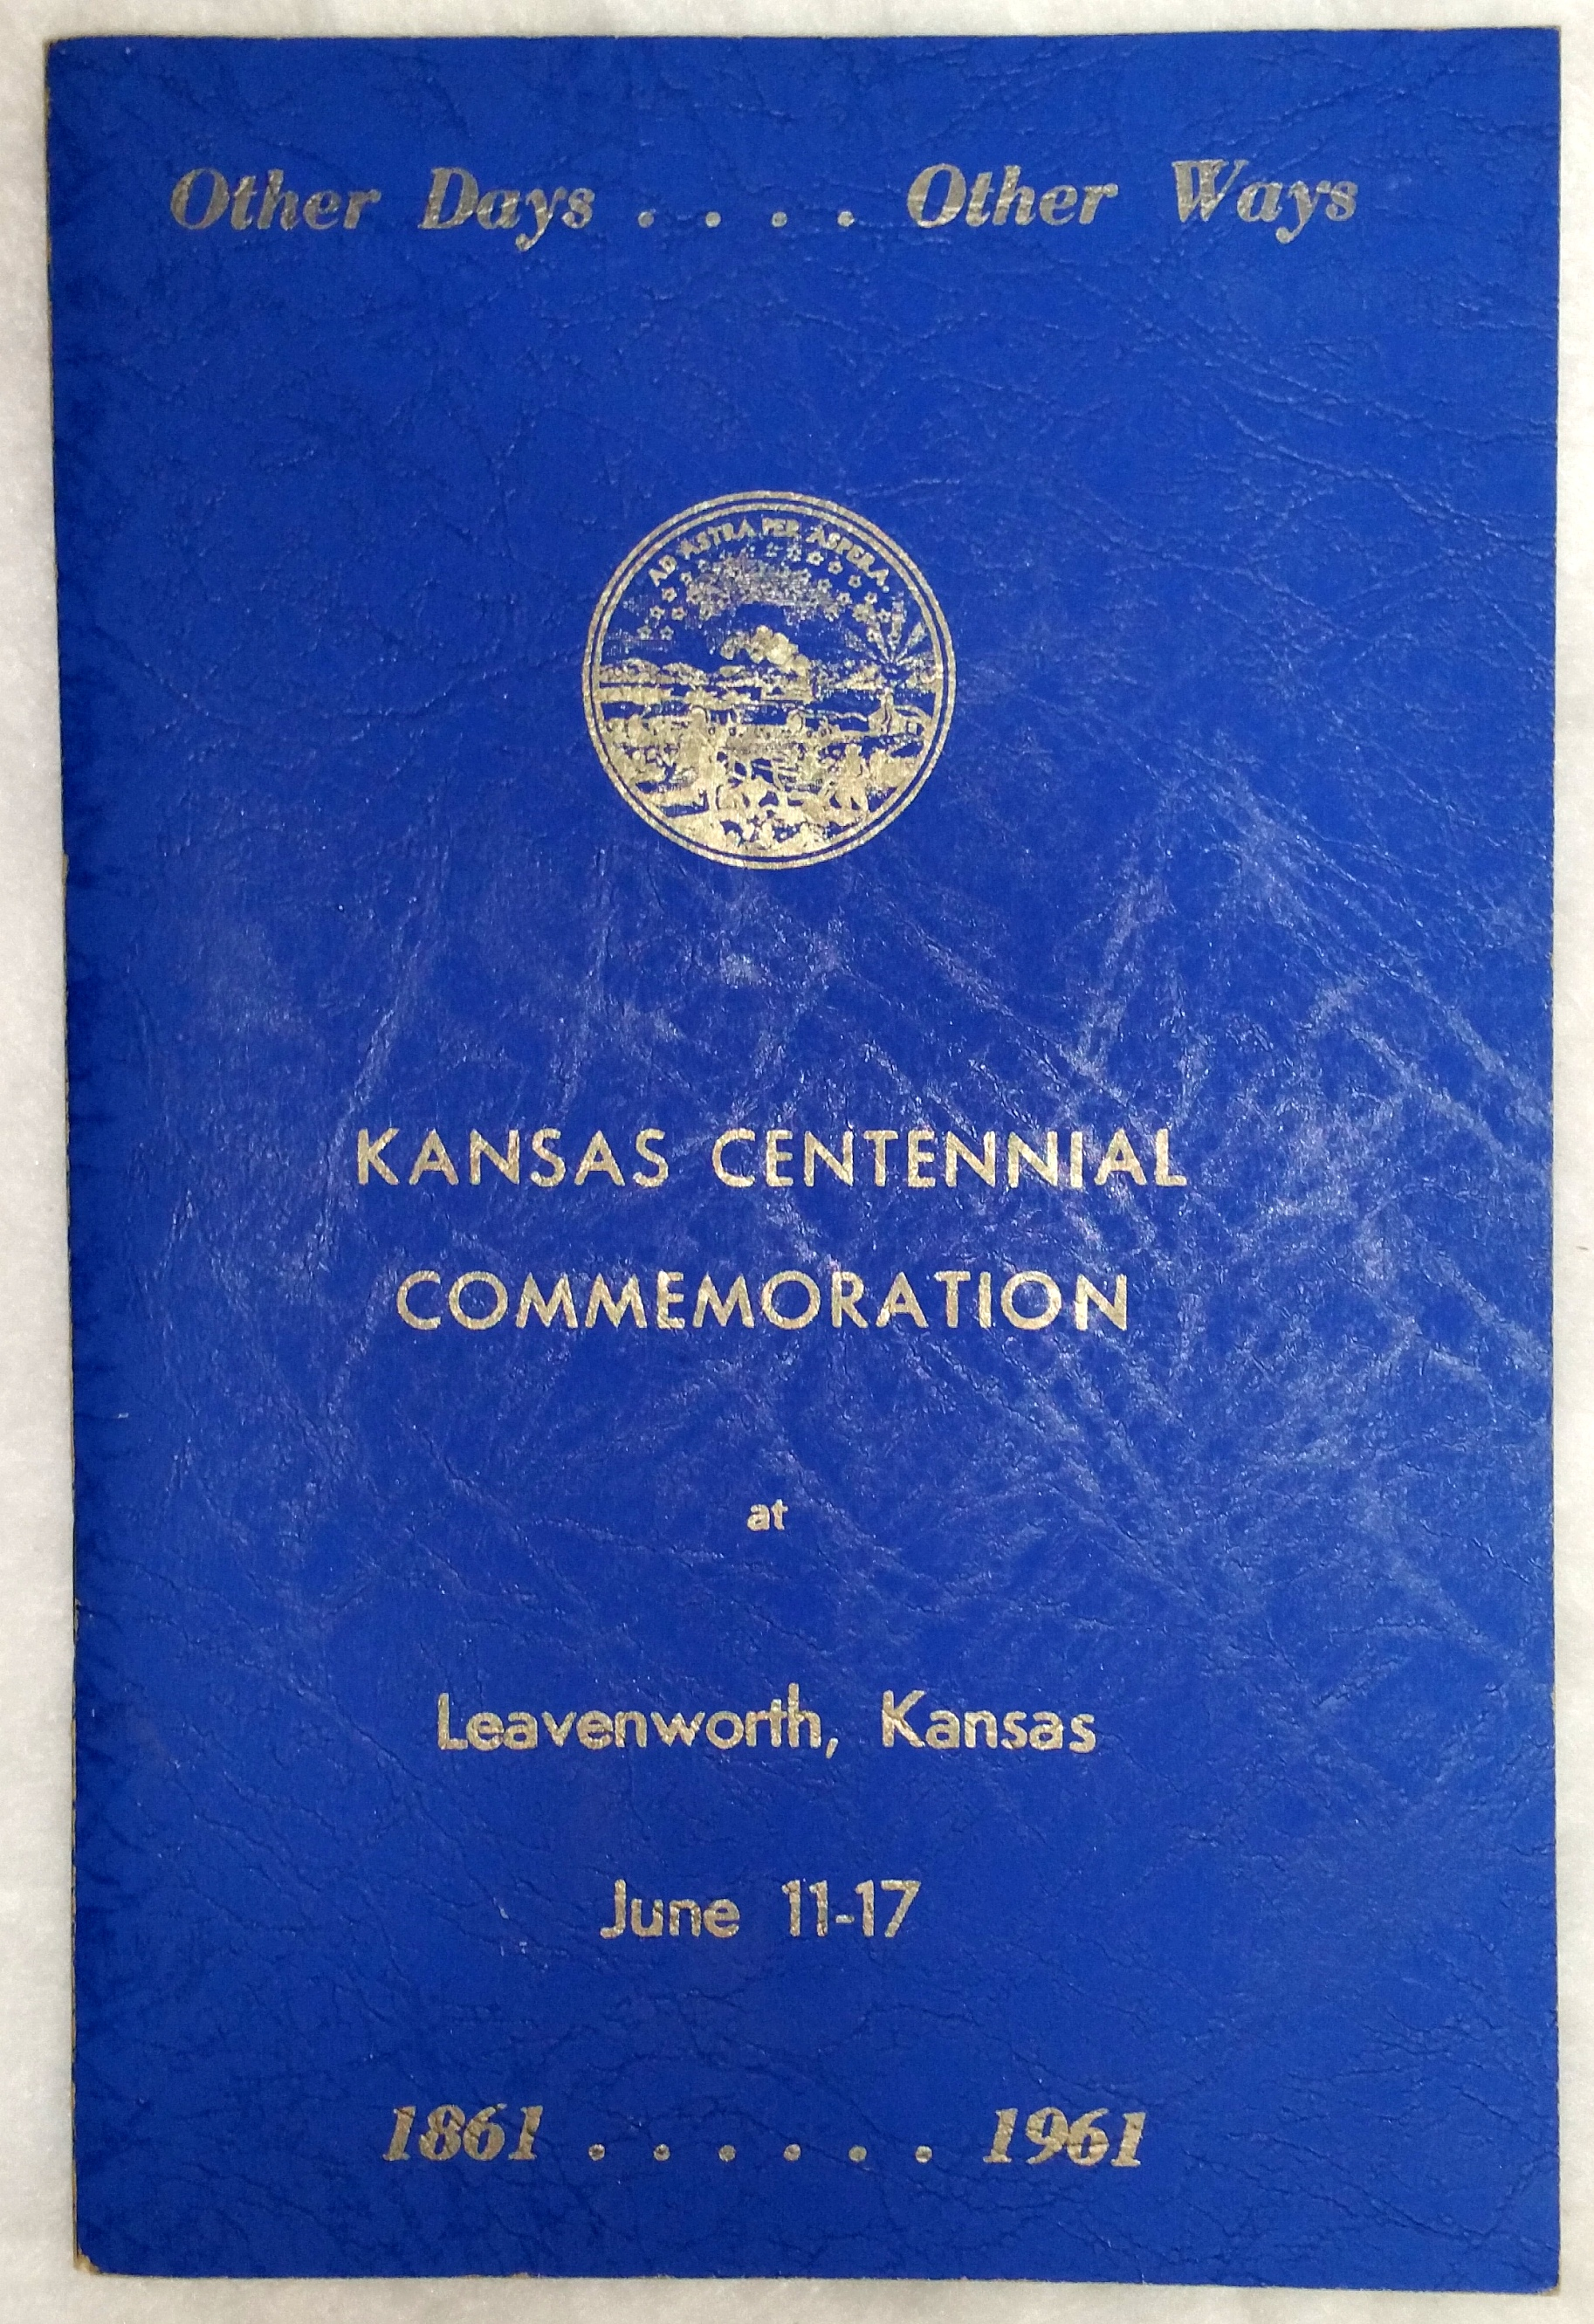 Image for Other Days....Other Ways:  One Hundred Years of Freedom and Progress in Leavenworth, Kansas, 1861......1961 (Kansas Centennial Commemoration at Leavenworth, Kansas, June 11-17)